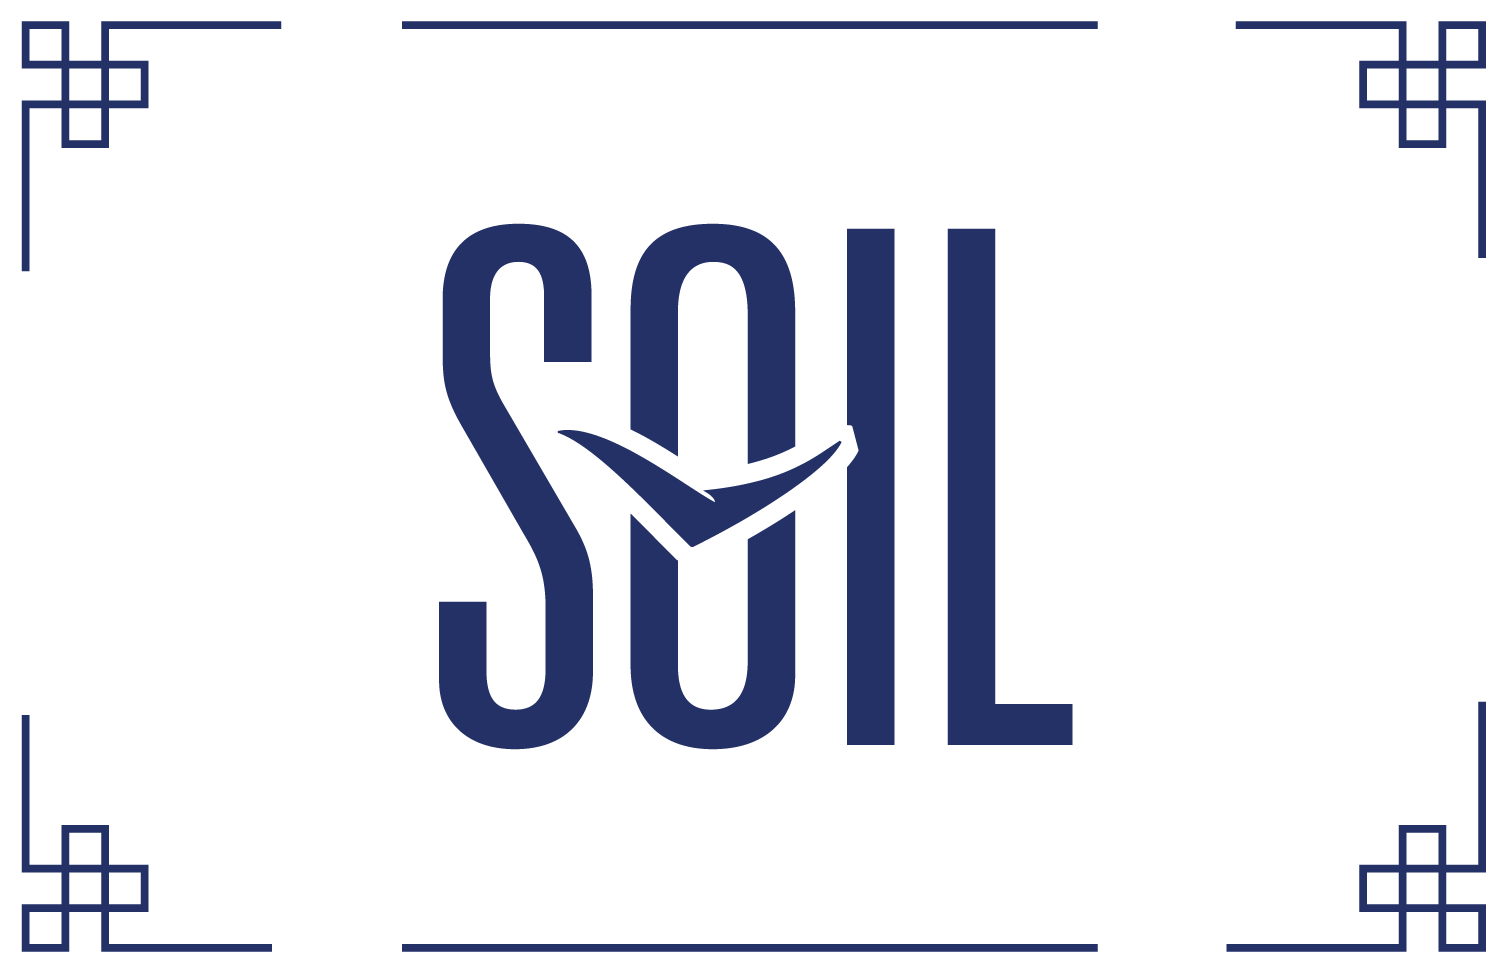 SOIL Restaurant Logo — by Yagnyuk.